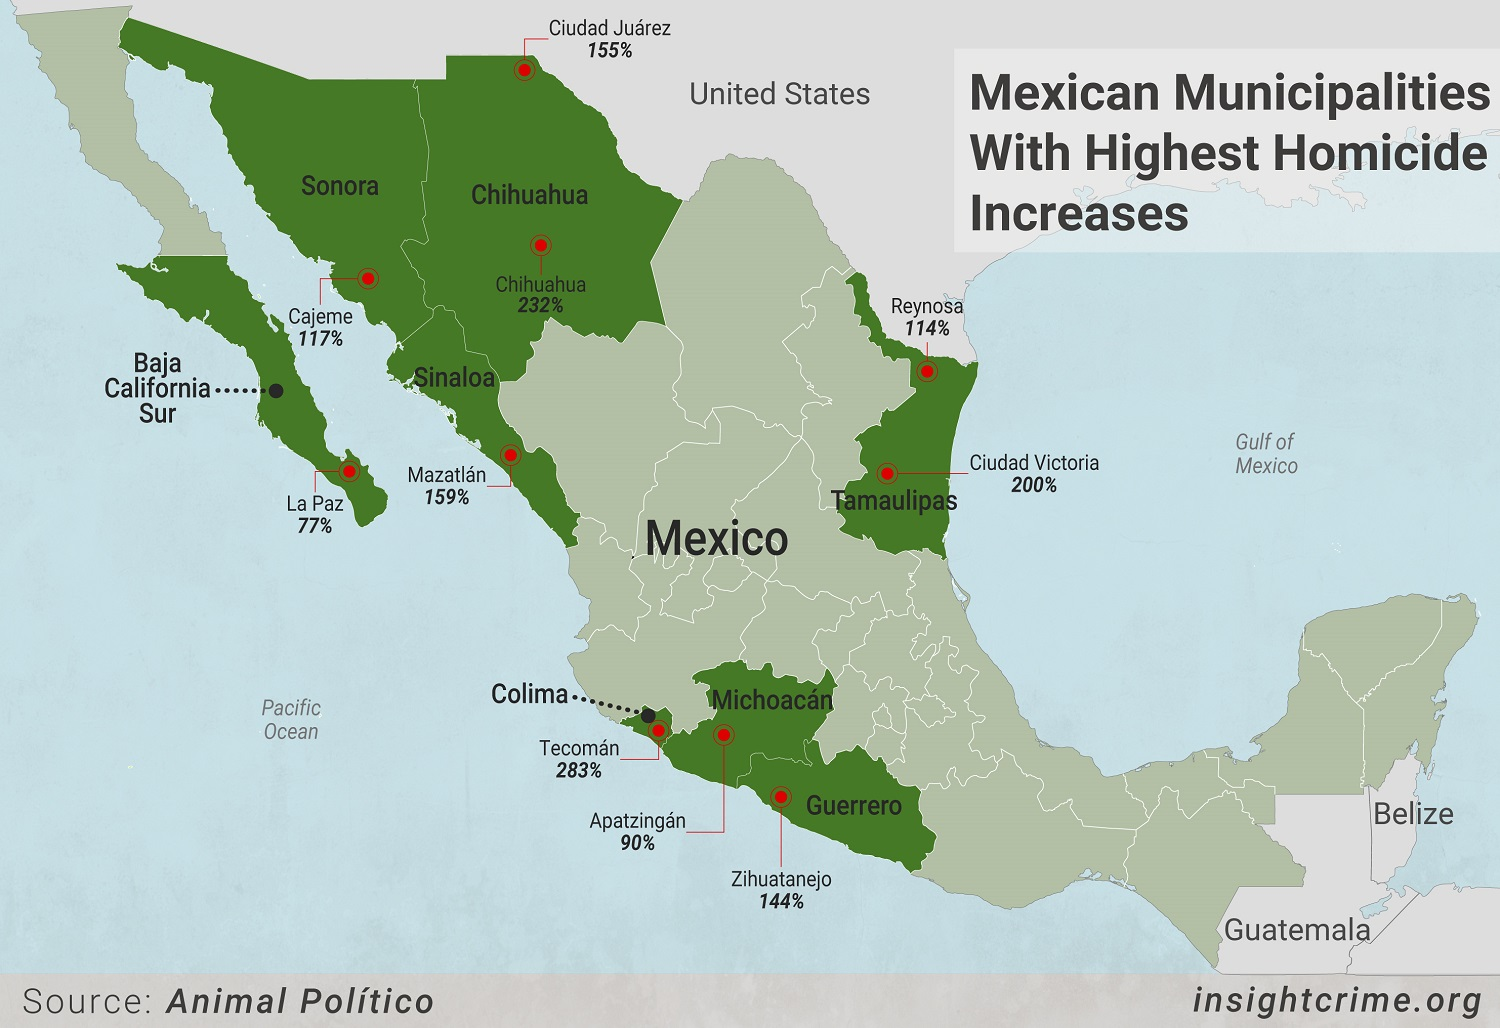 17-03-29-Mexico-Municipalities-With-Highest-Homicide-Increases